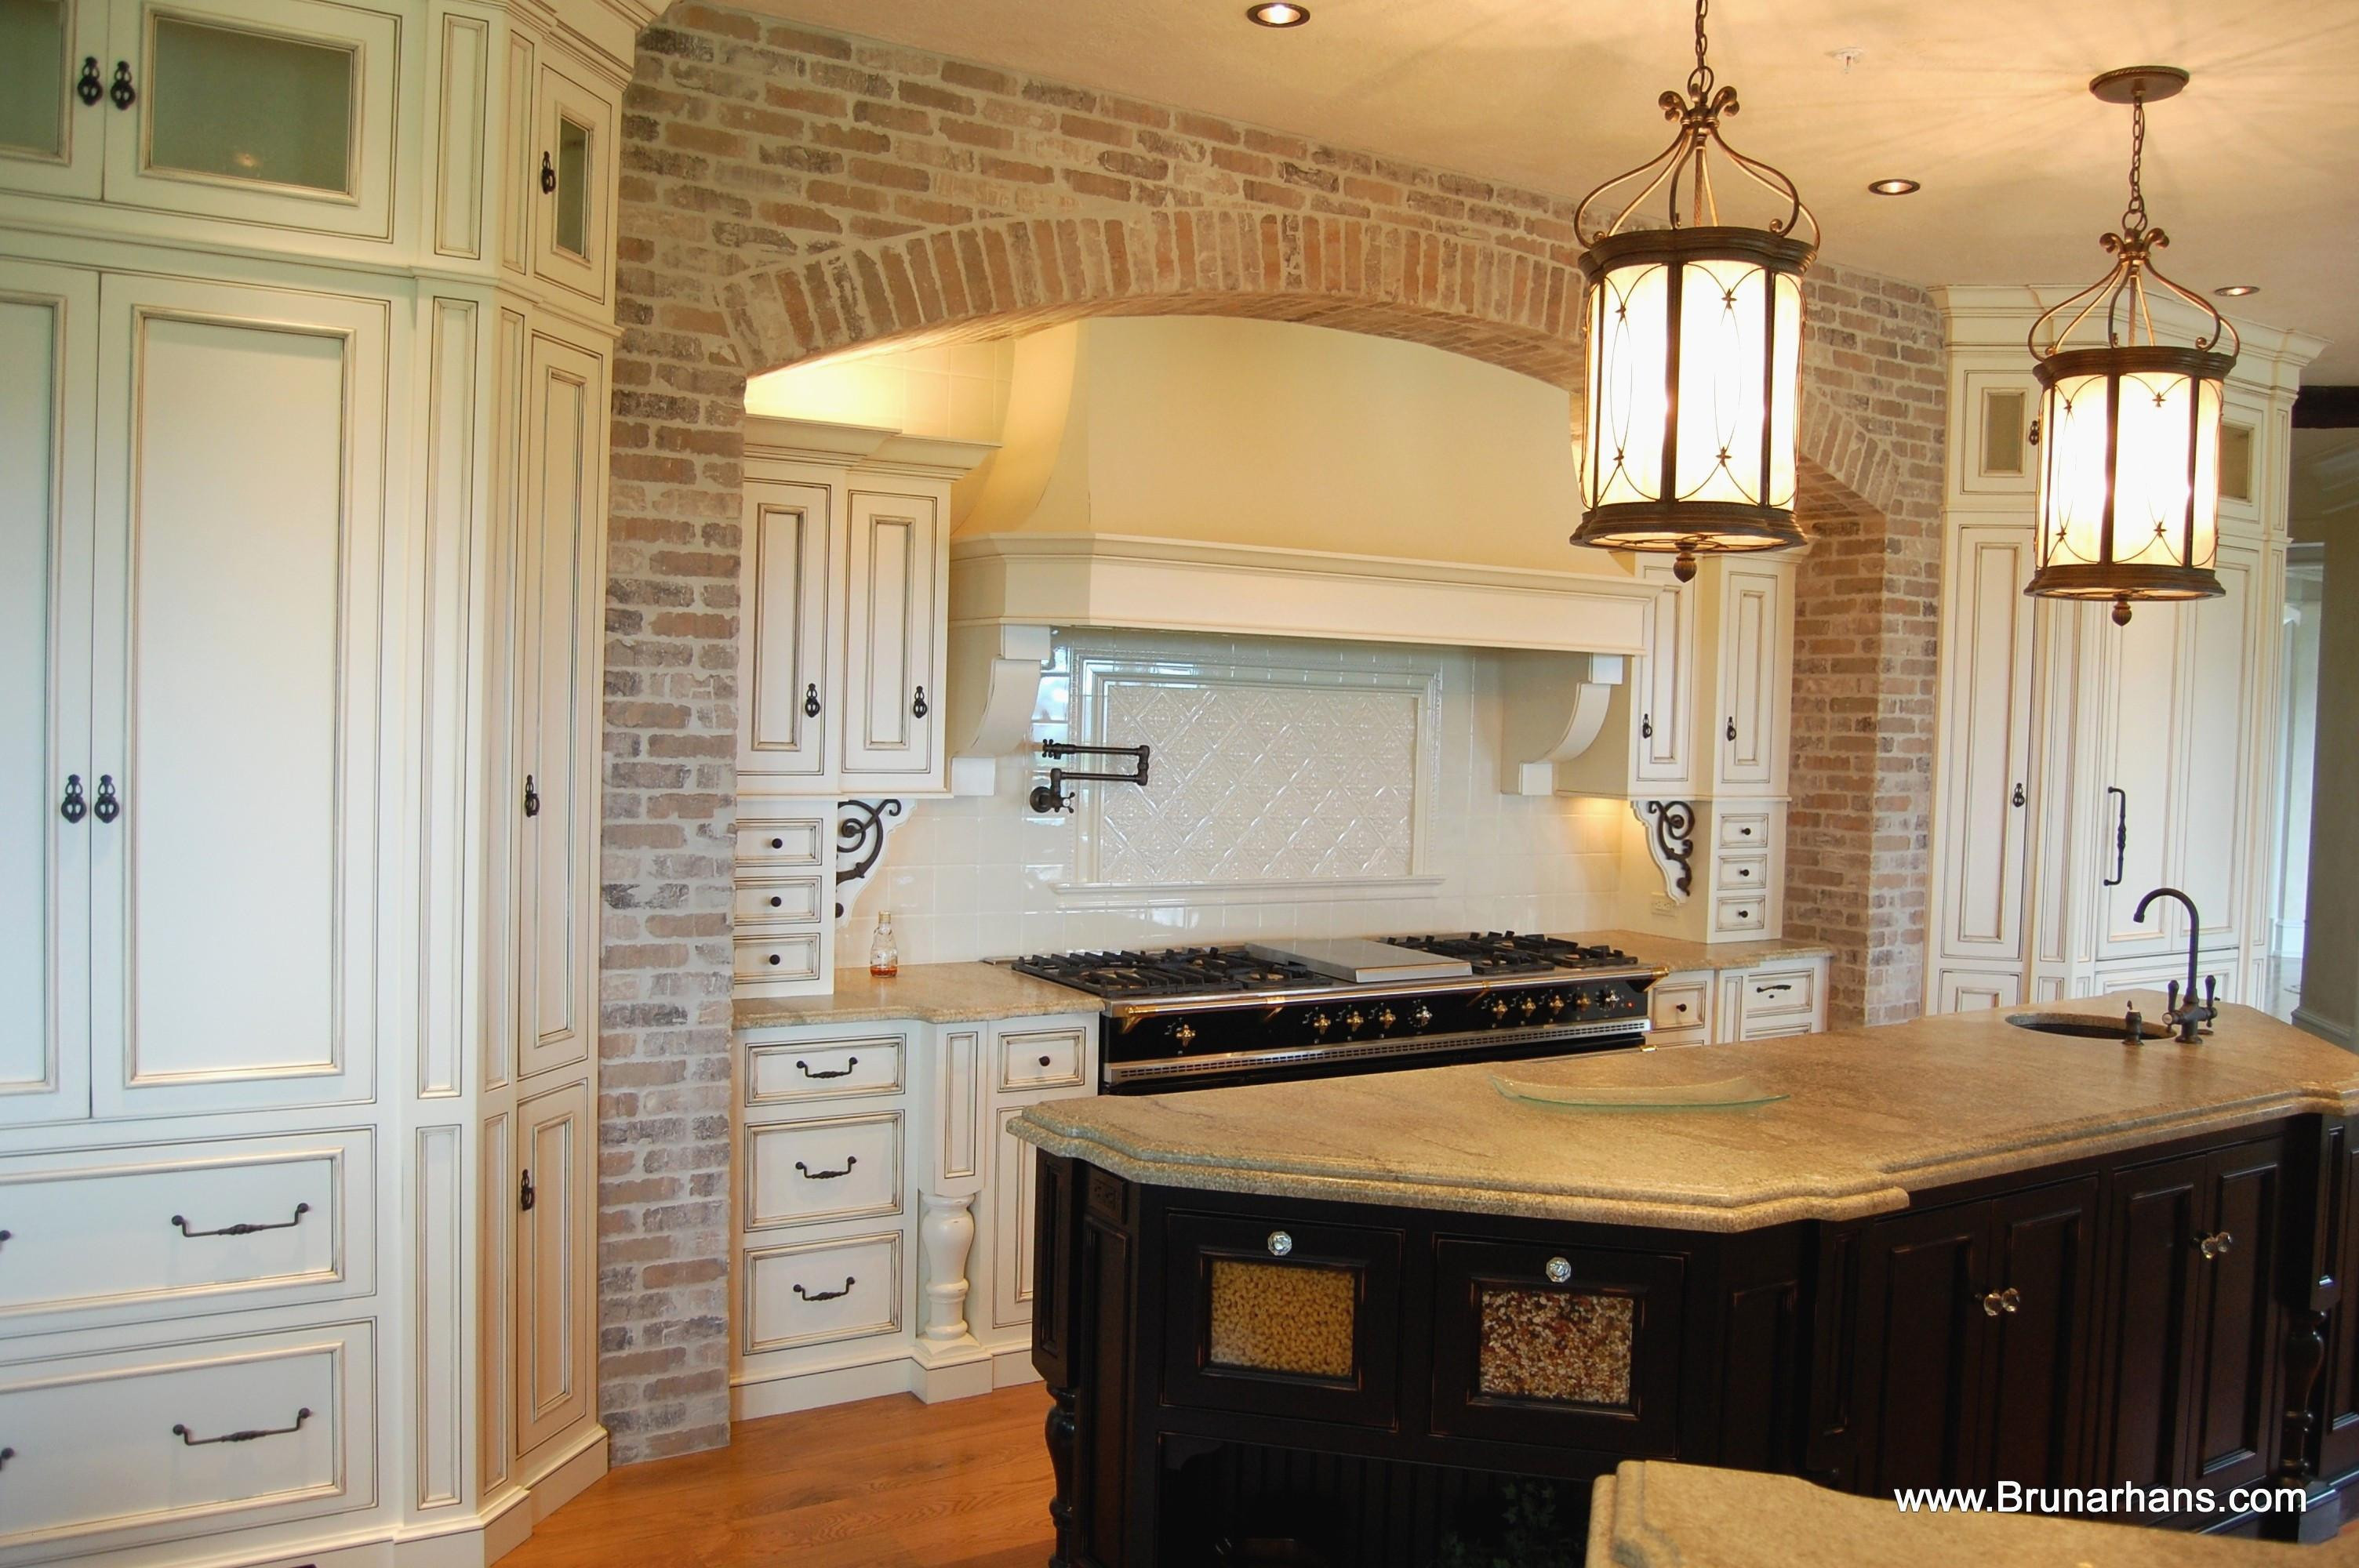 houzz hardwood flooring ideas of reviving a late 19th century row house kitchen inspiration of oak with over cabinet kitchen lighting over the cabinet lighting led ideas of oak kitchen cabinets on houzz